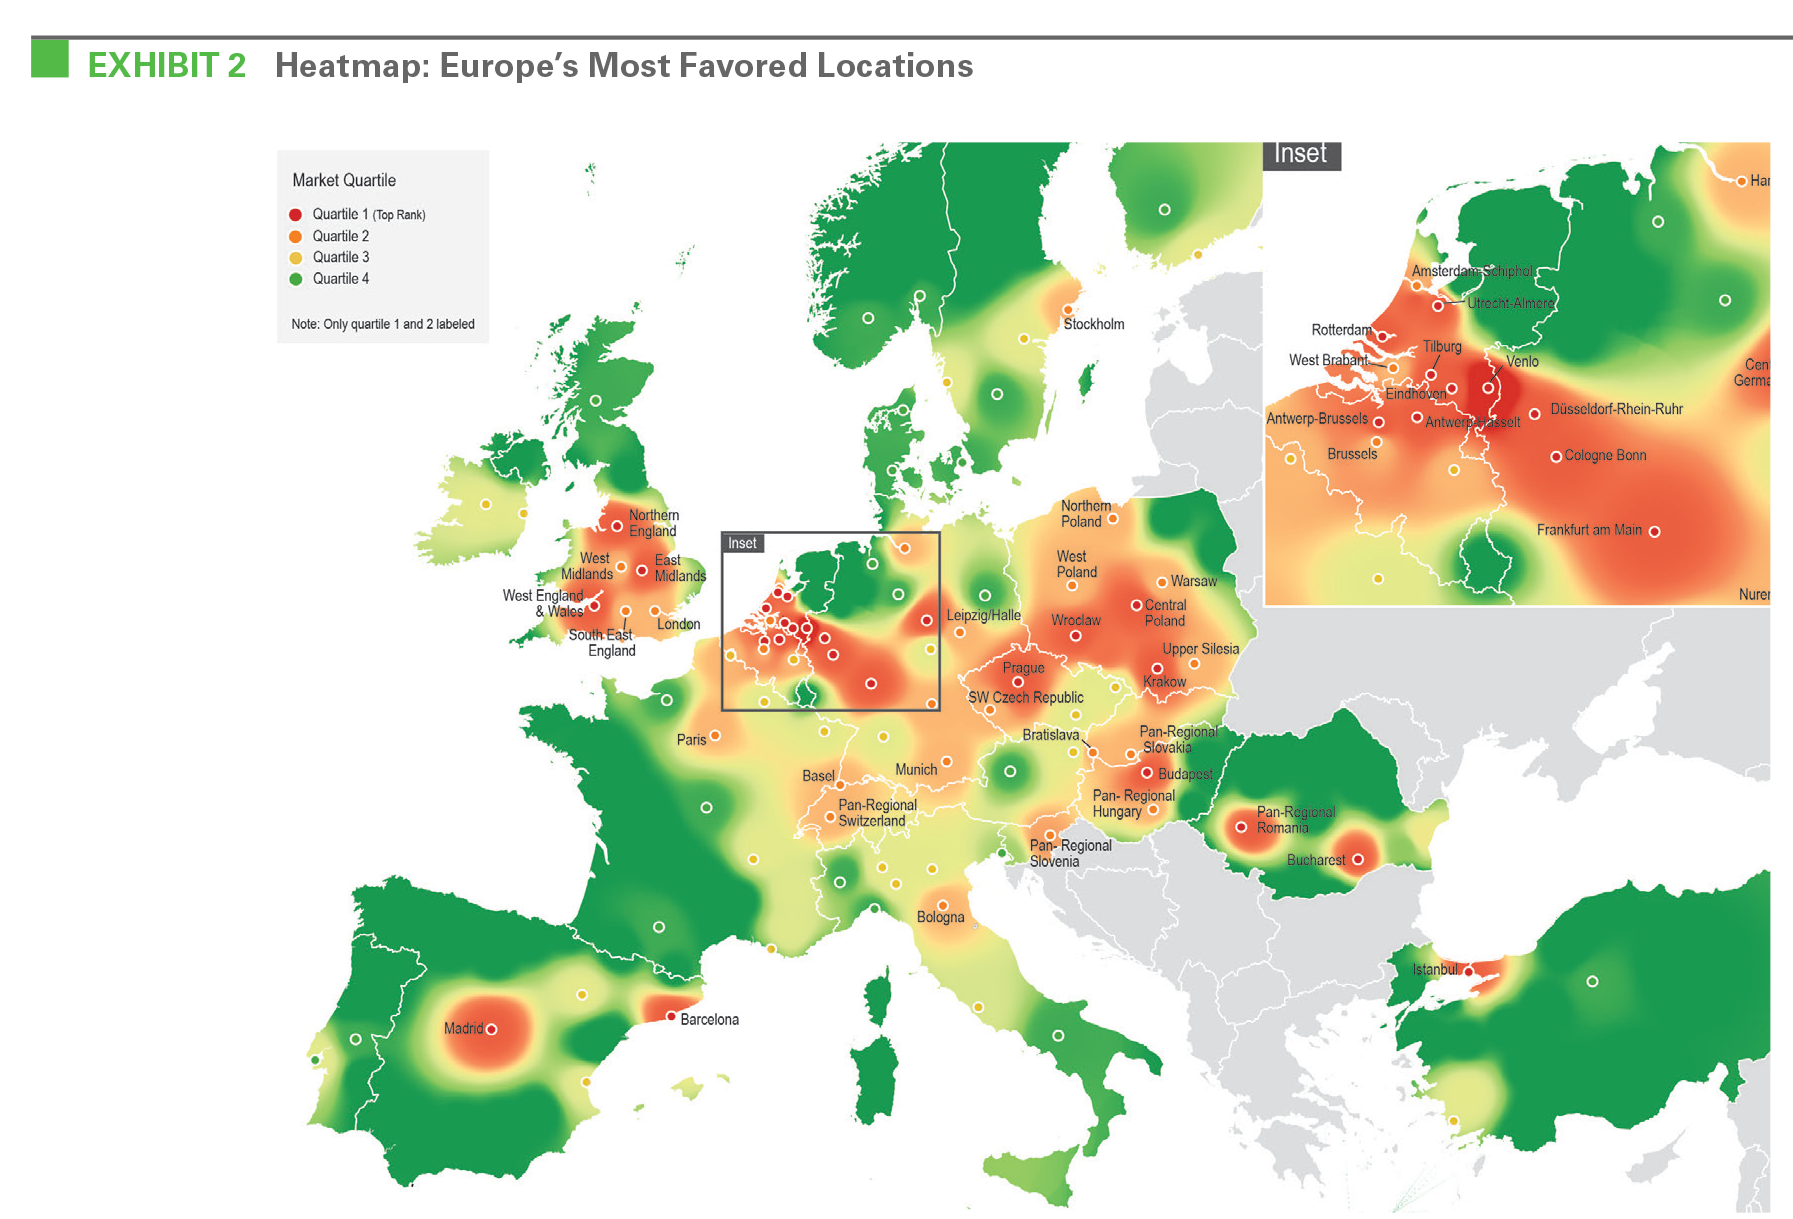 EXHIBIT 2 Heatmap: Europe's Most Favored Locations